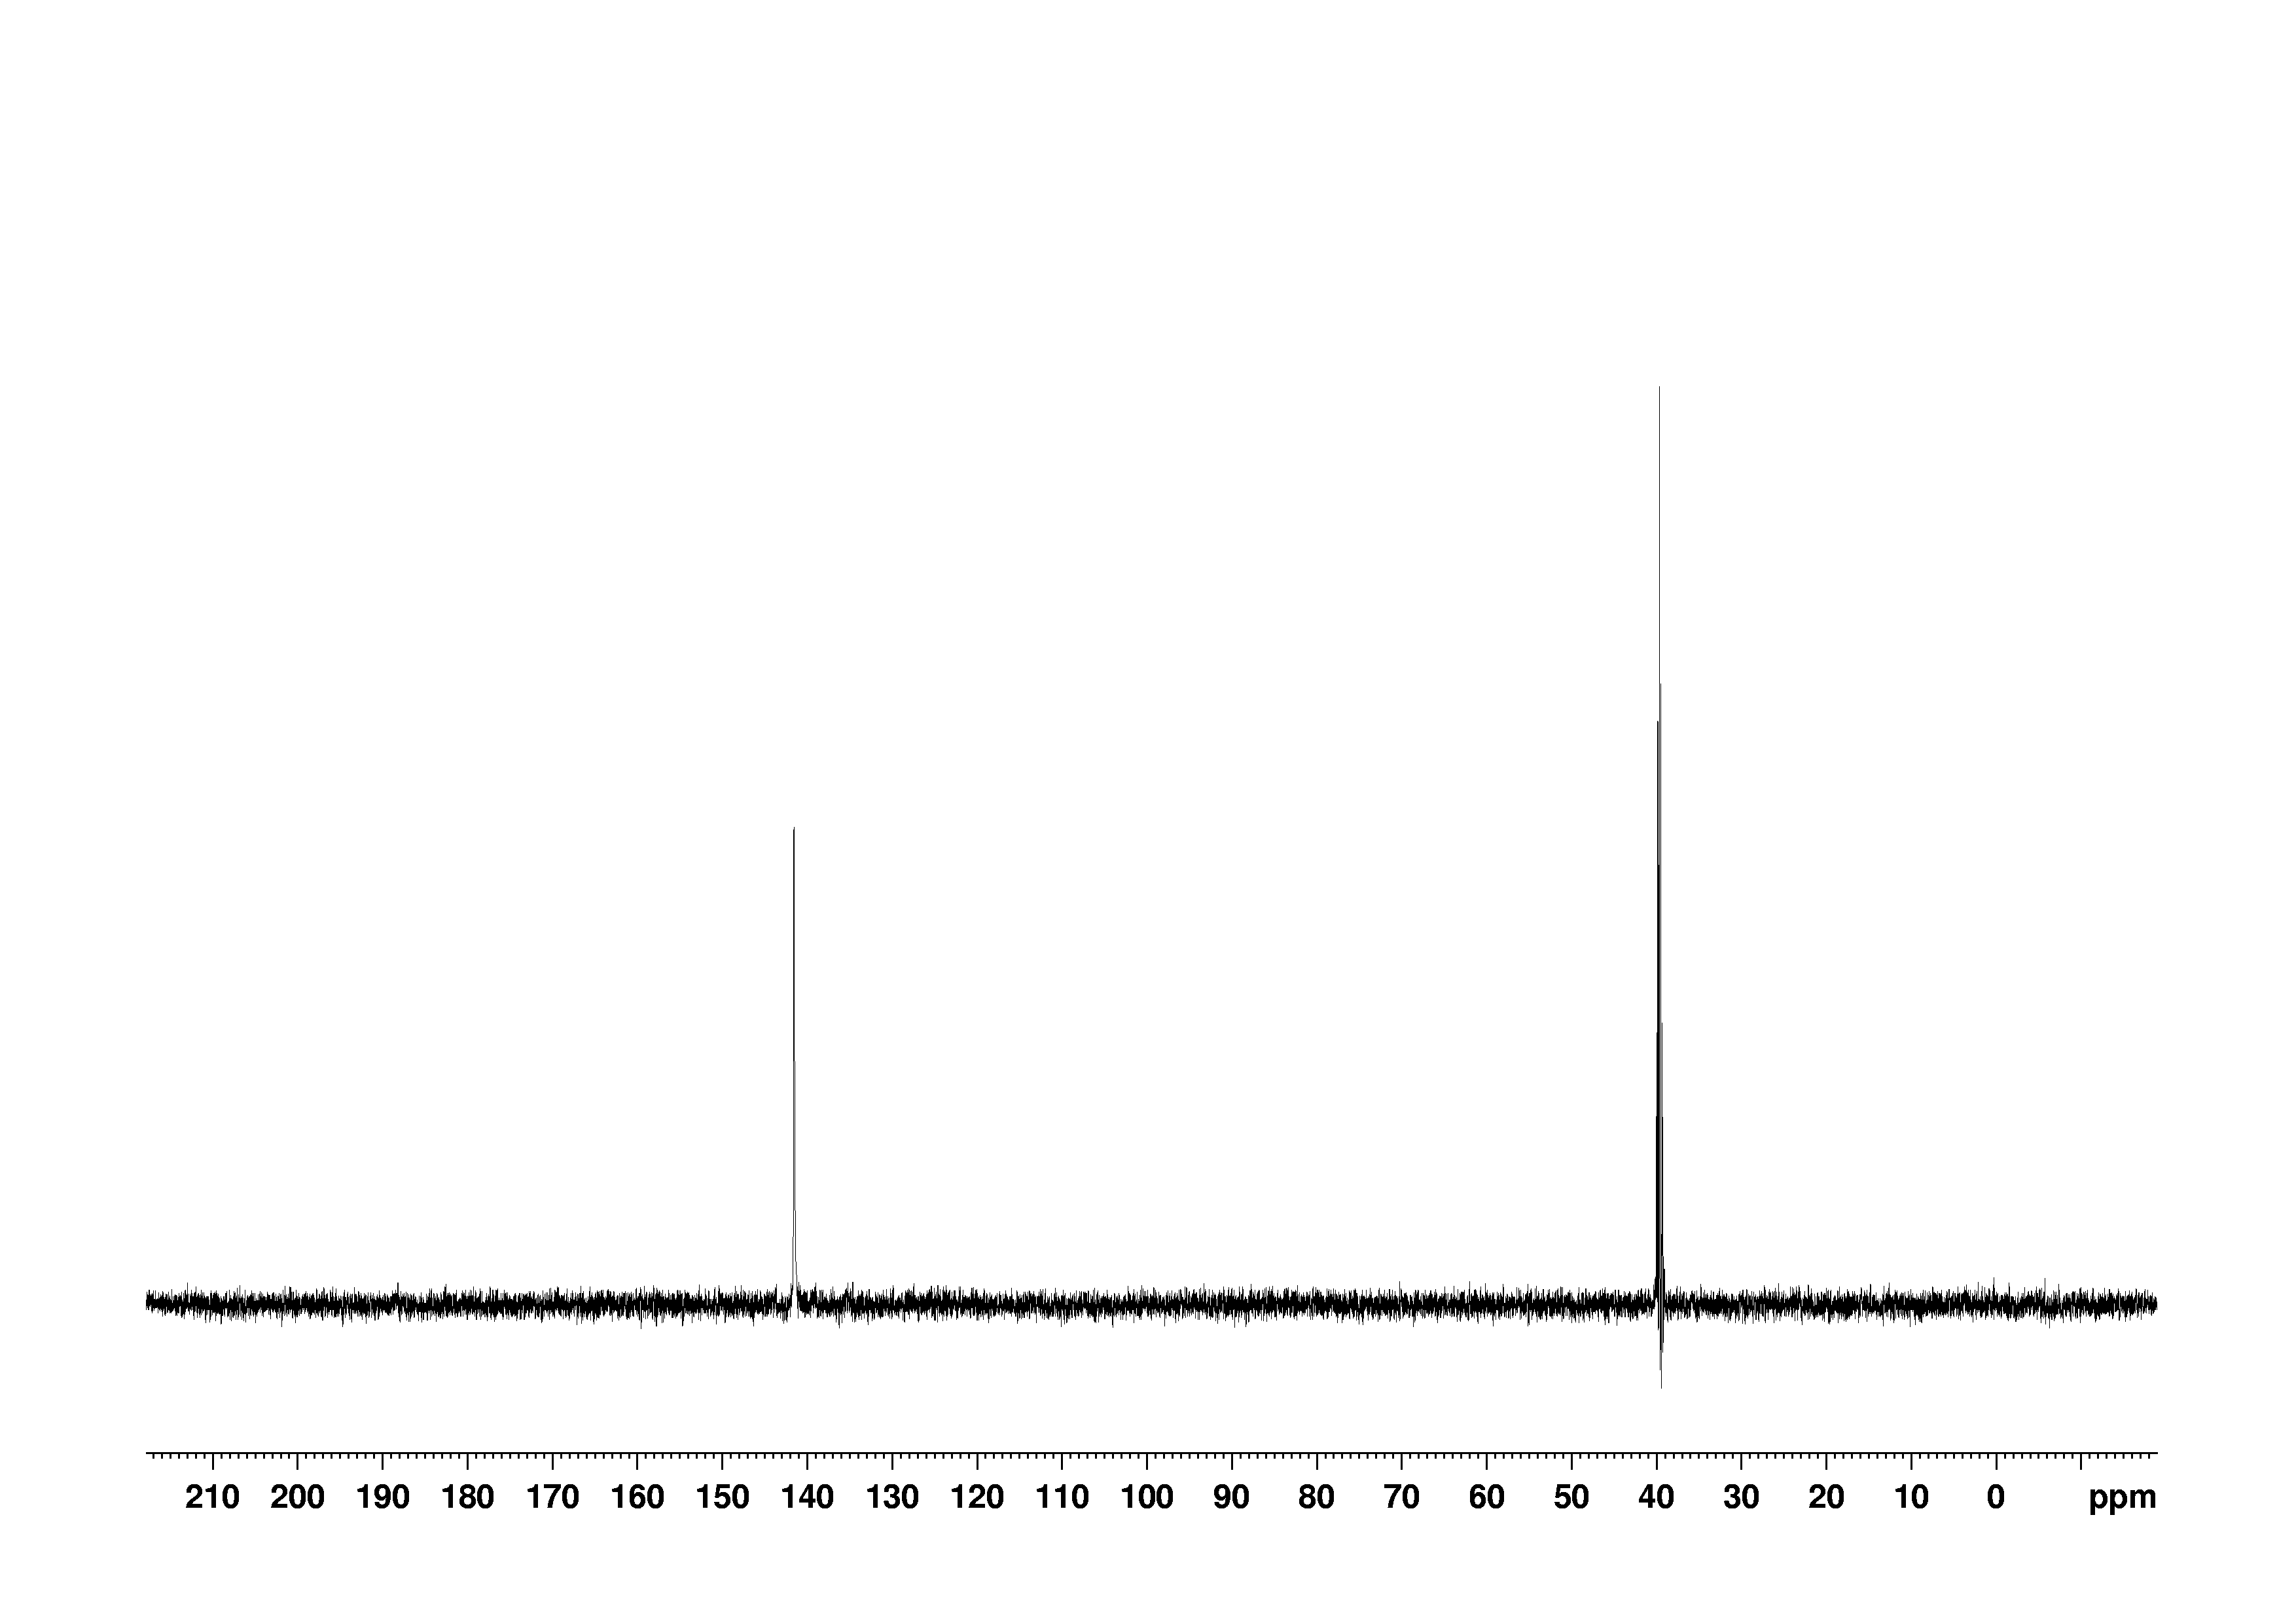 1D DEPT90, n/a spectrum for 2-Amino-6-chloropurine